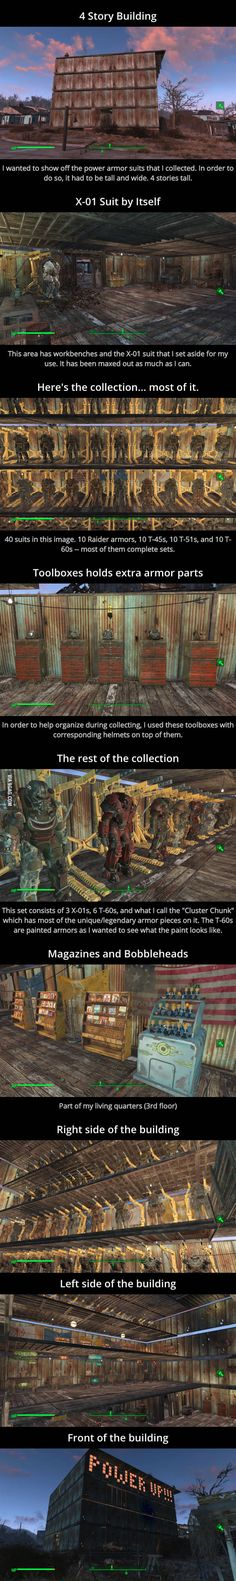 Fallout 4 Extreme Power Armor Collection Nerd heaven in my opinion Fallout 3, Fallout 4 Funny, Fallout Tips, Fallout Facts, Fallout New Vegas, Fallout Quotes, Play Fallout, Fallout Comics, Fallout Cosplay